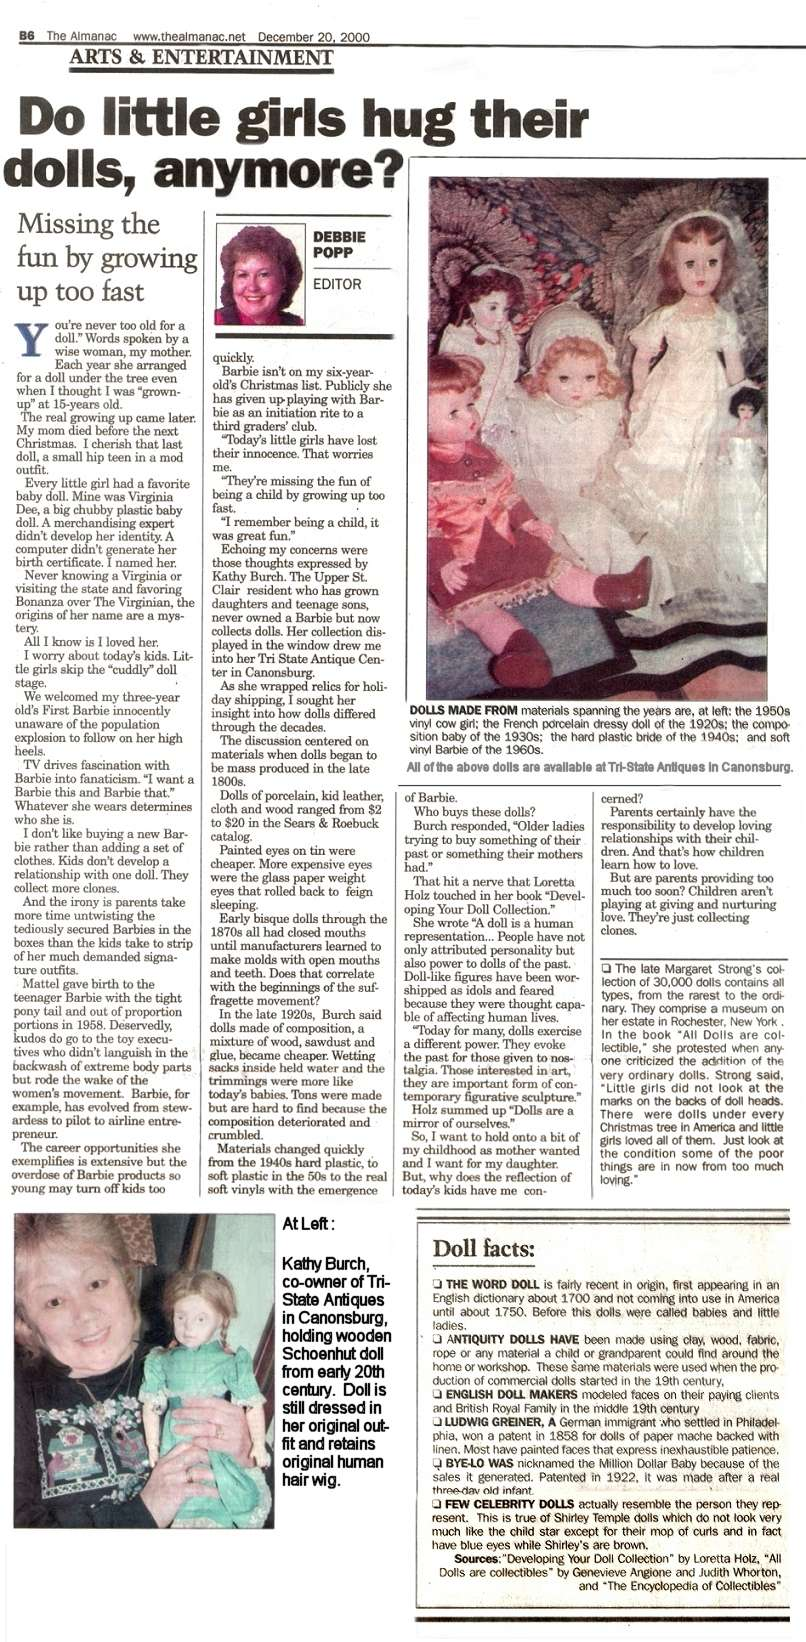 Doll Article in the Almanac, December 20, 2000